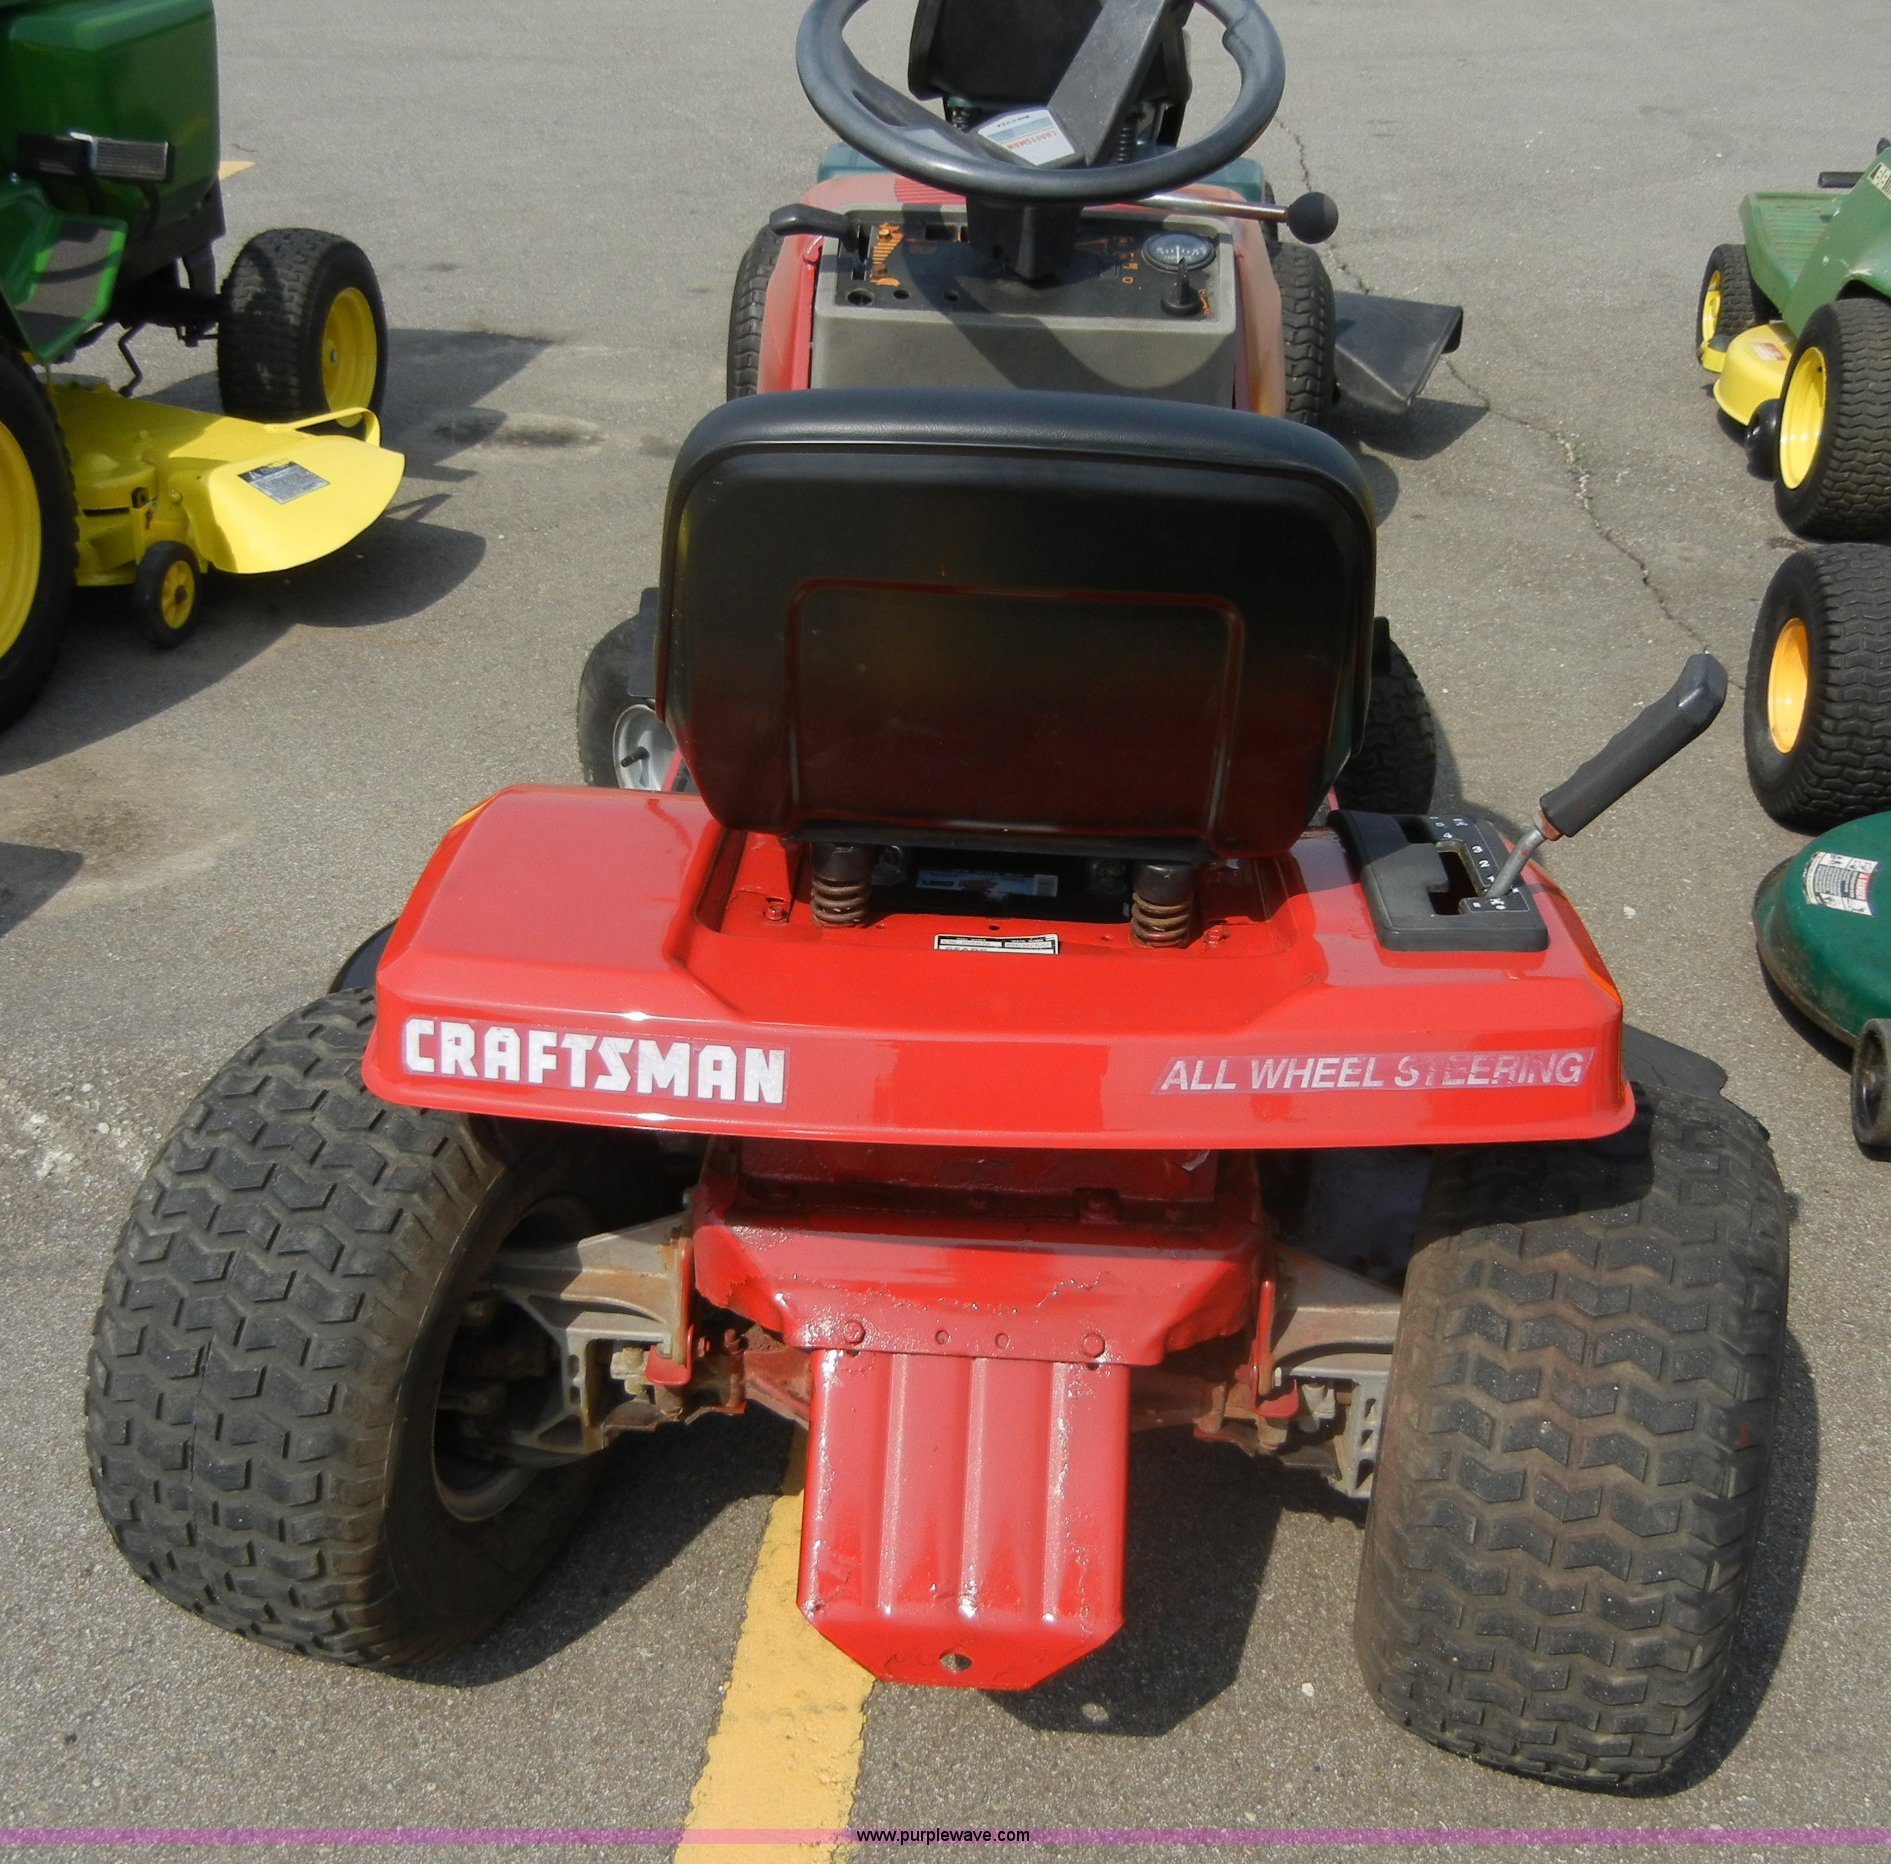 Craftsman lawn mower | Item 2369 | SOLD! June 29 Midwest Int